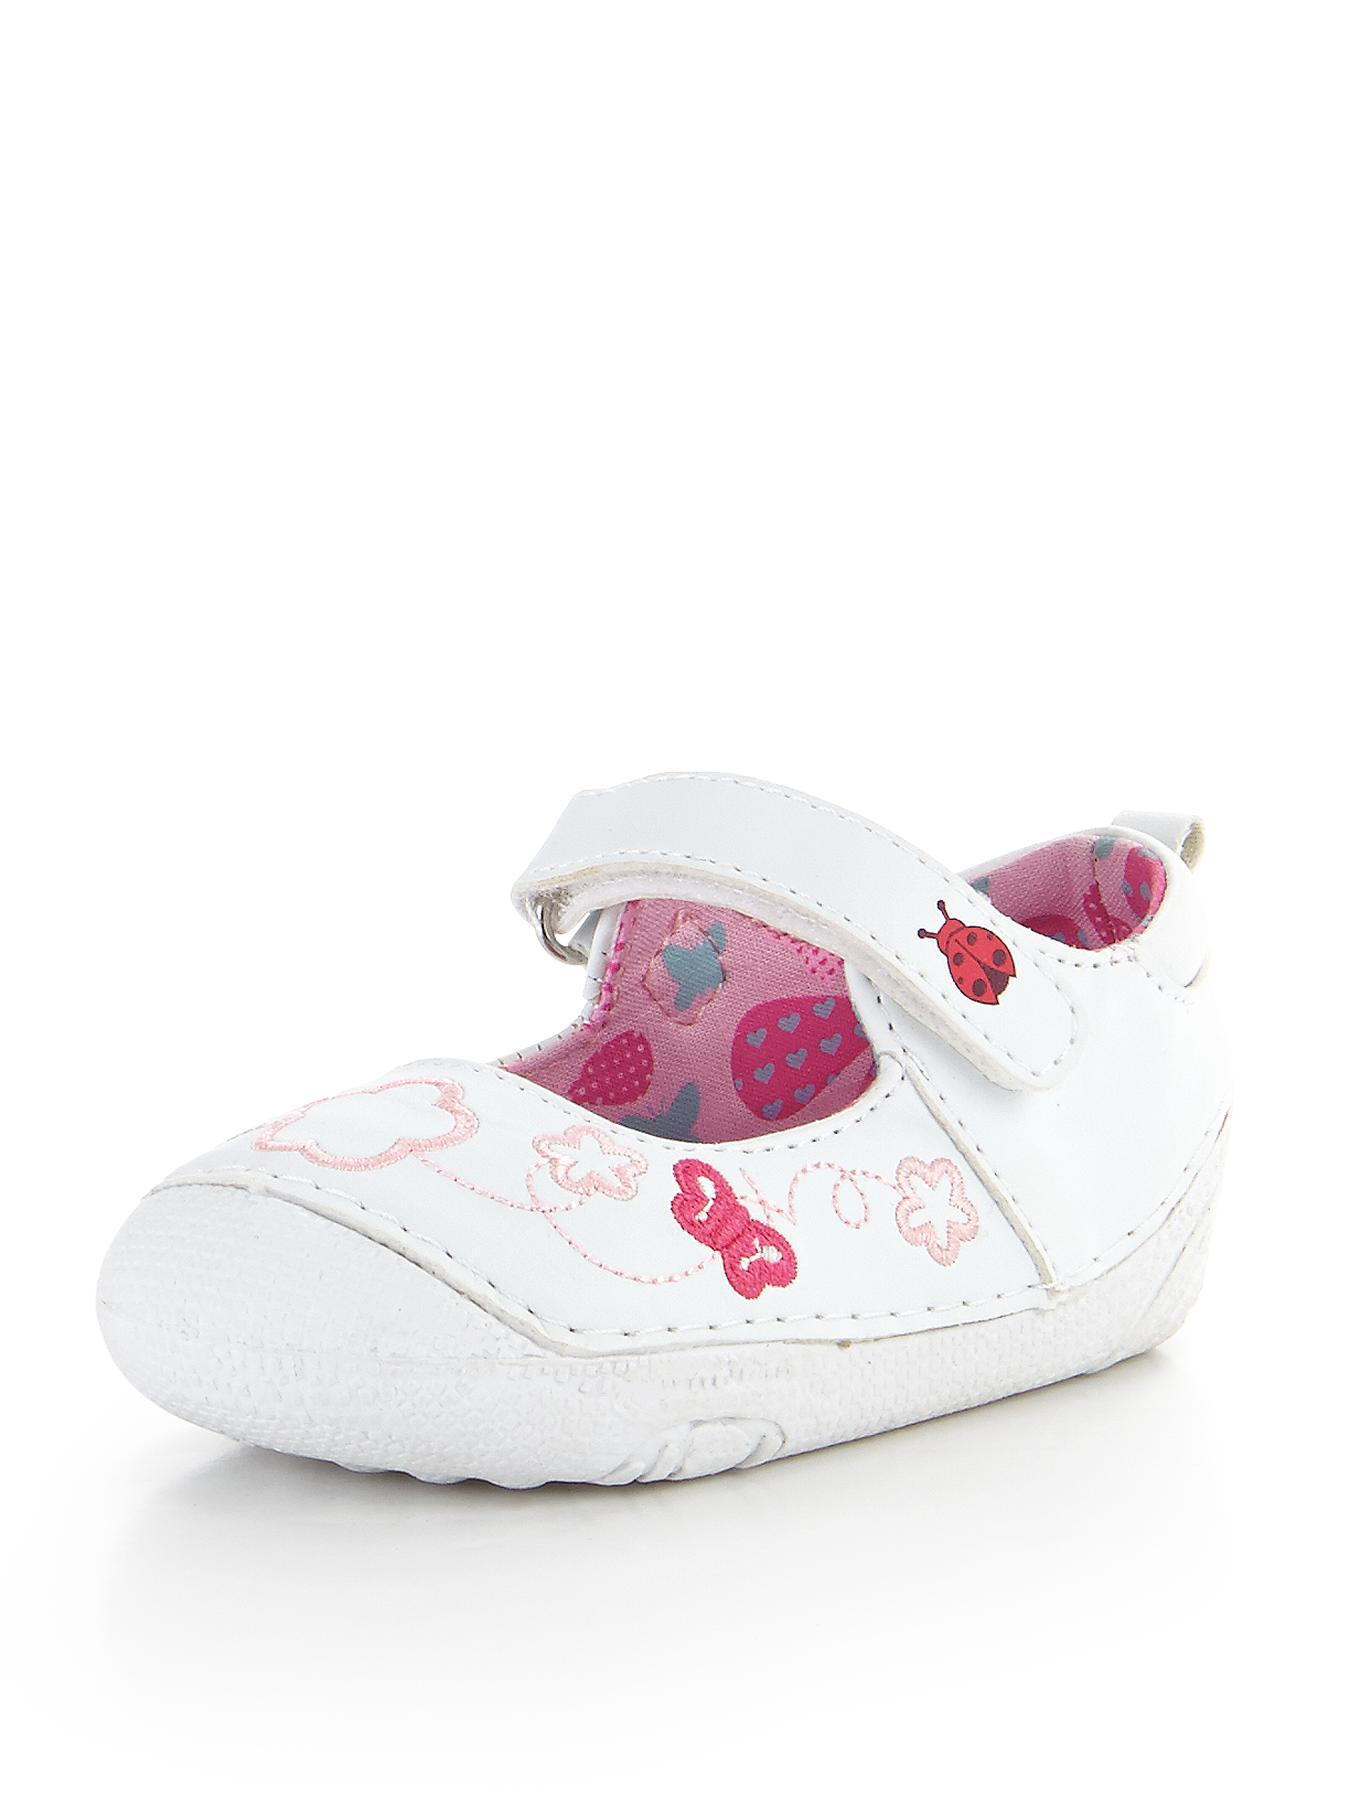 Alana First Walker Shoes, White